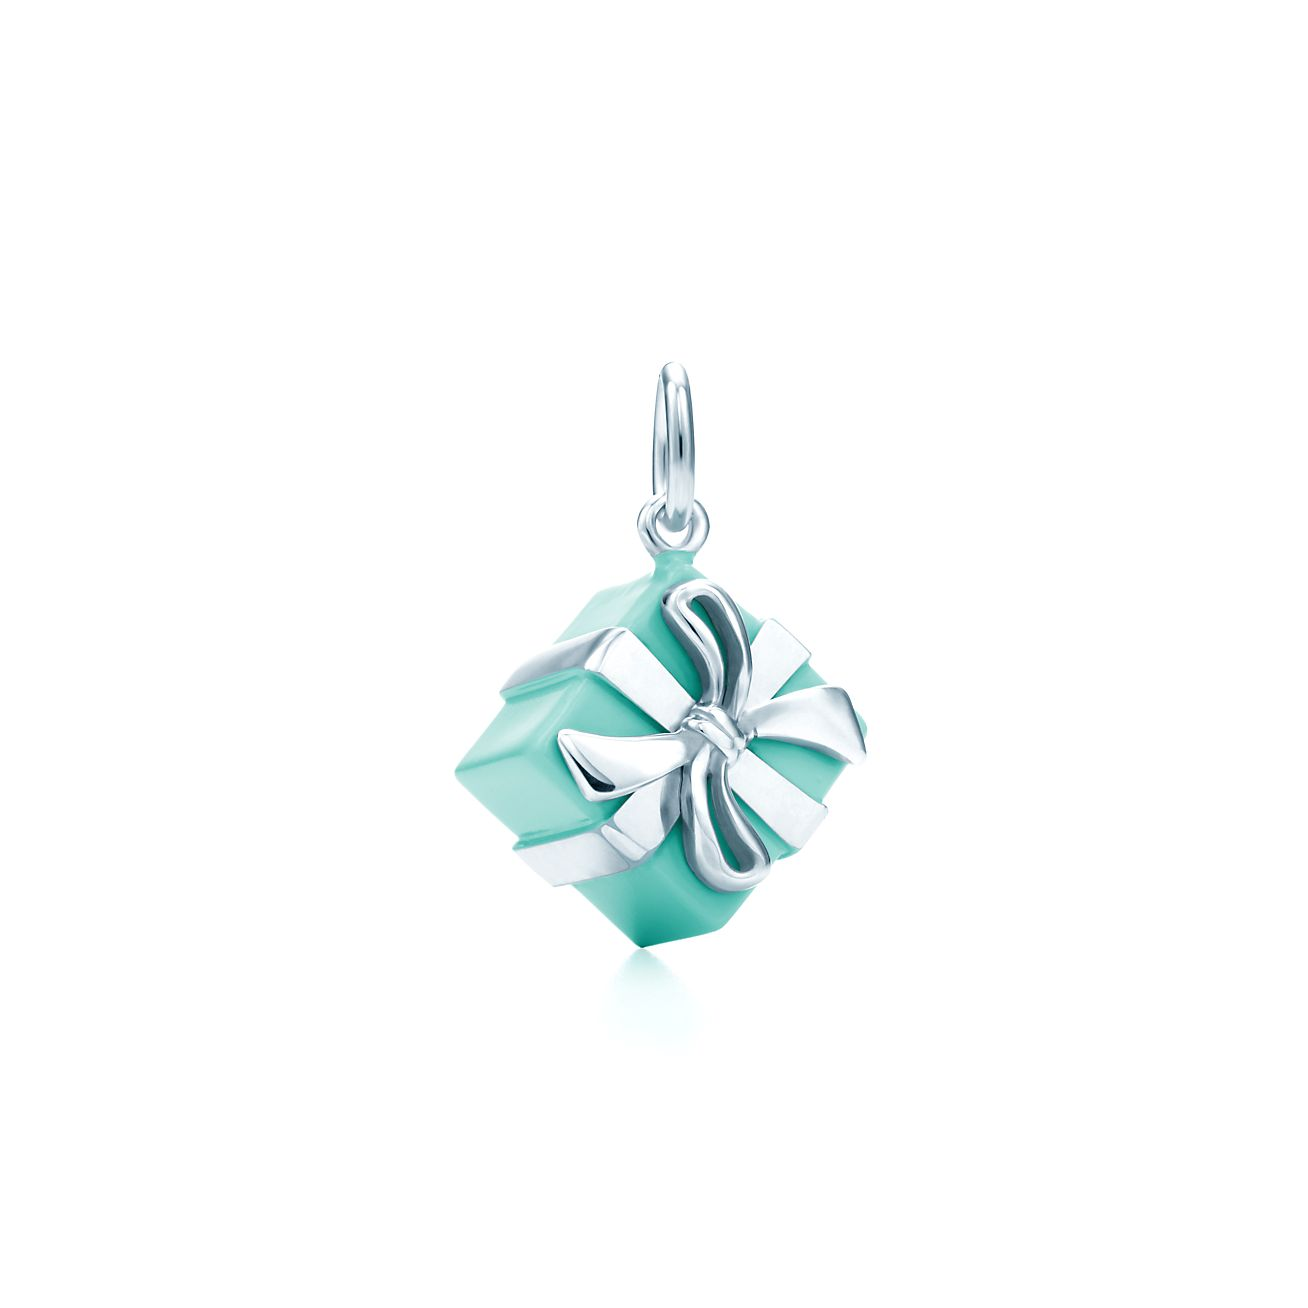 Tiffany & Co shopping bag charm in sterling silver with enamel finish Tiffany & Co.